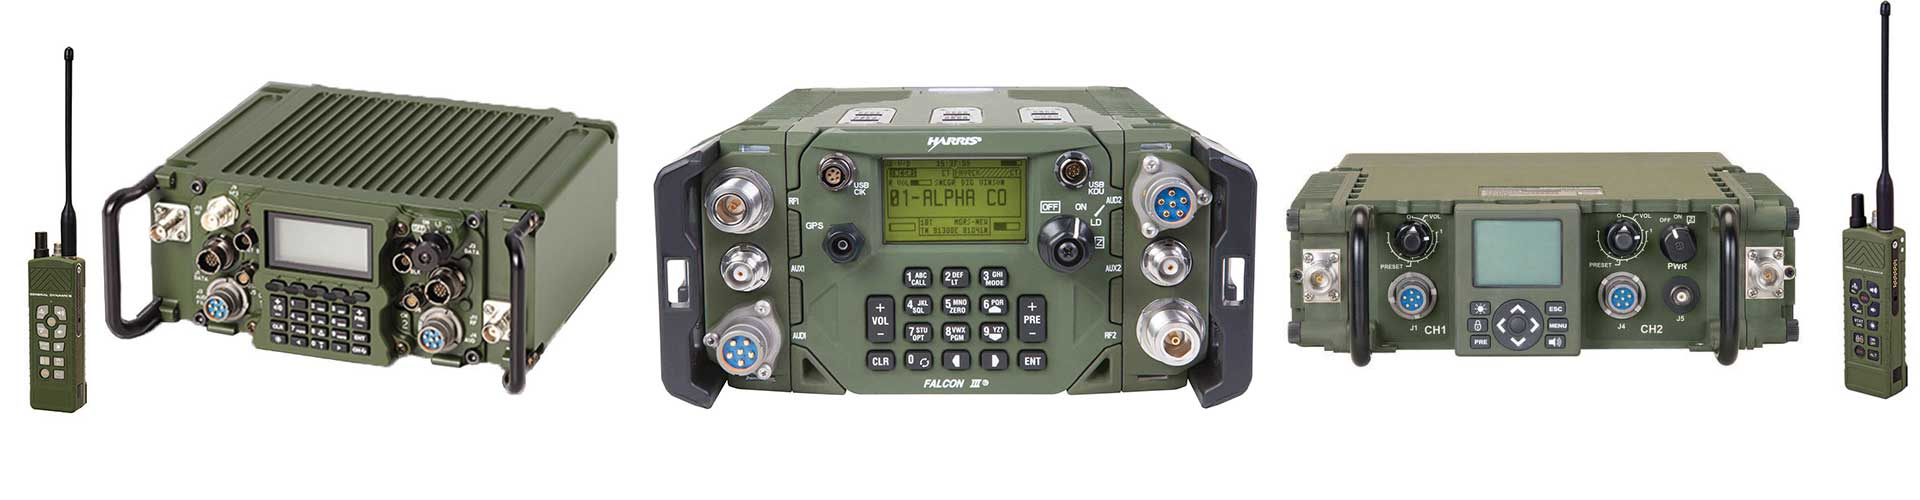 Handheld, Manpack and Small Form Fit (HMS) radios - USAASC